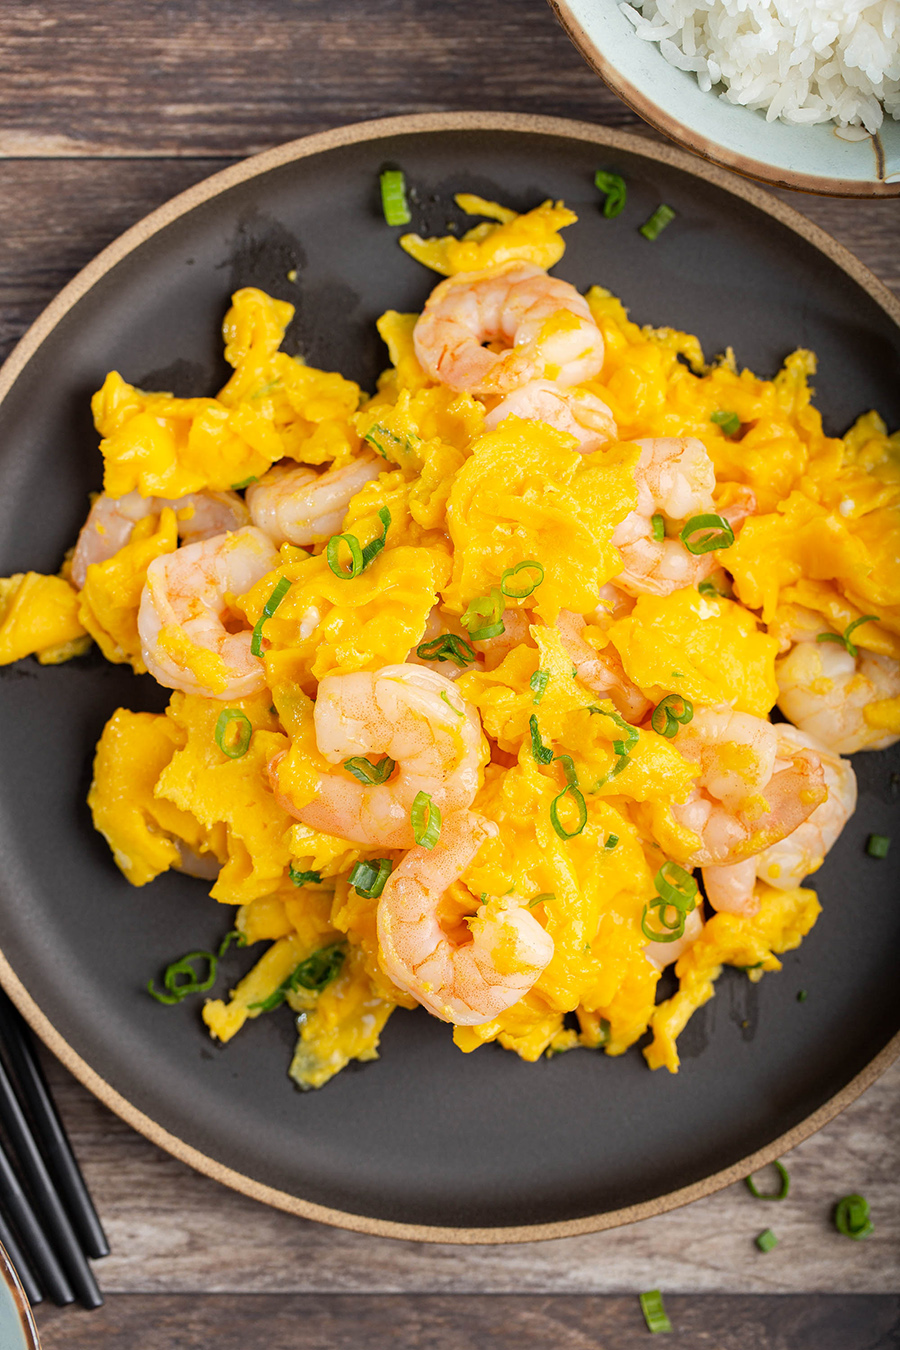 Stir-Fried Shrimps and Eggs | This classic Chinese dish needs 6 ingredients. YES, eggs can be for dinner too! #stirfry #shrimp #seafood #egg #chineserecipe #easyrecipe #dinner #dinnerrecipe | The Missing Lokness